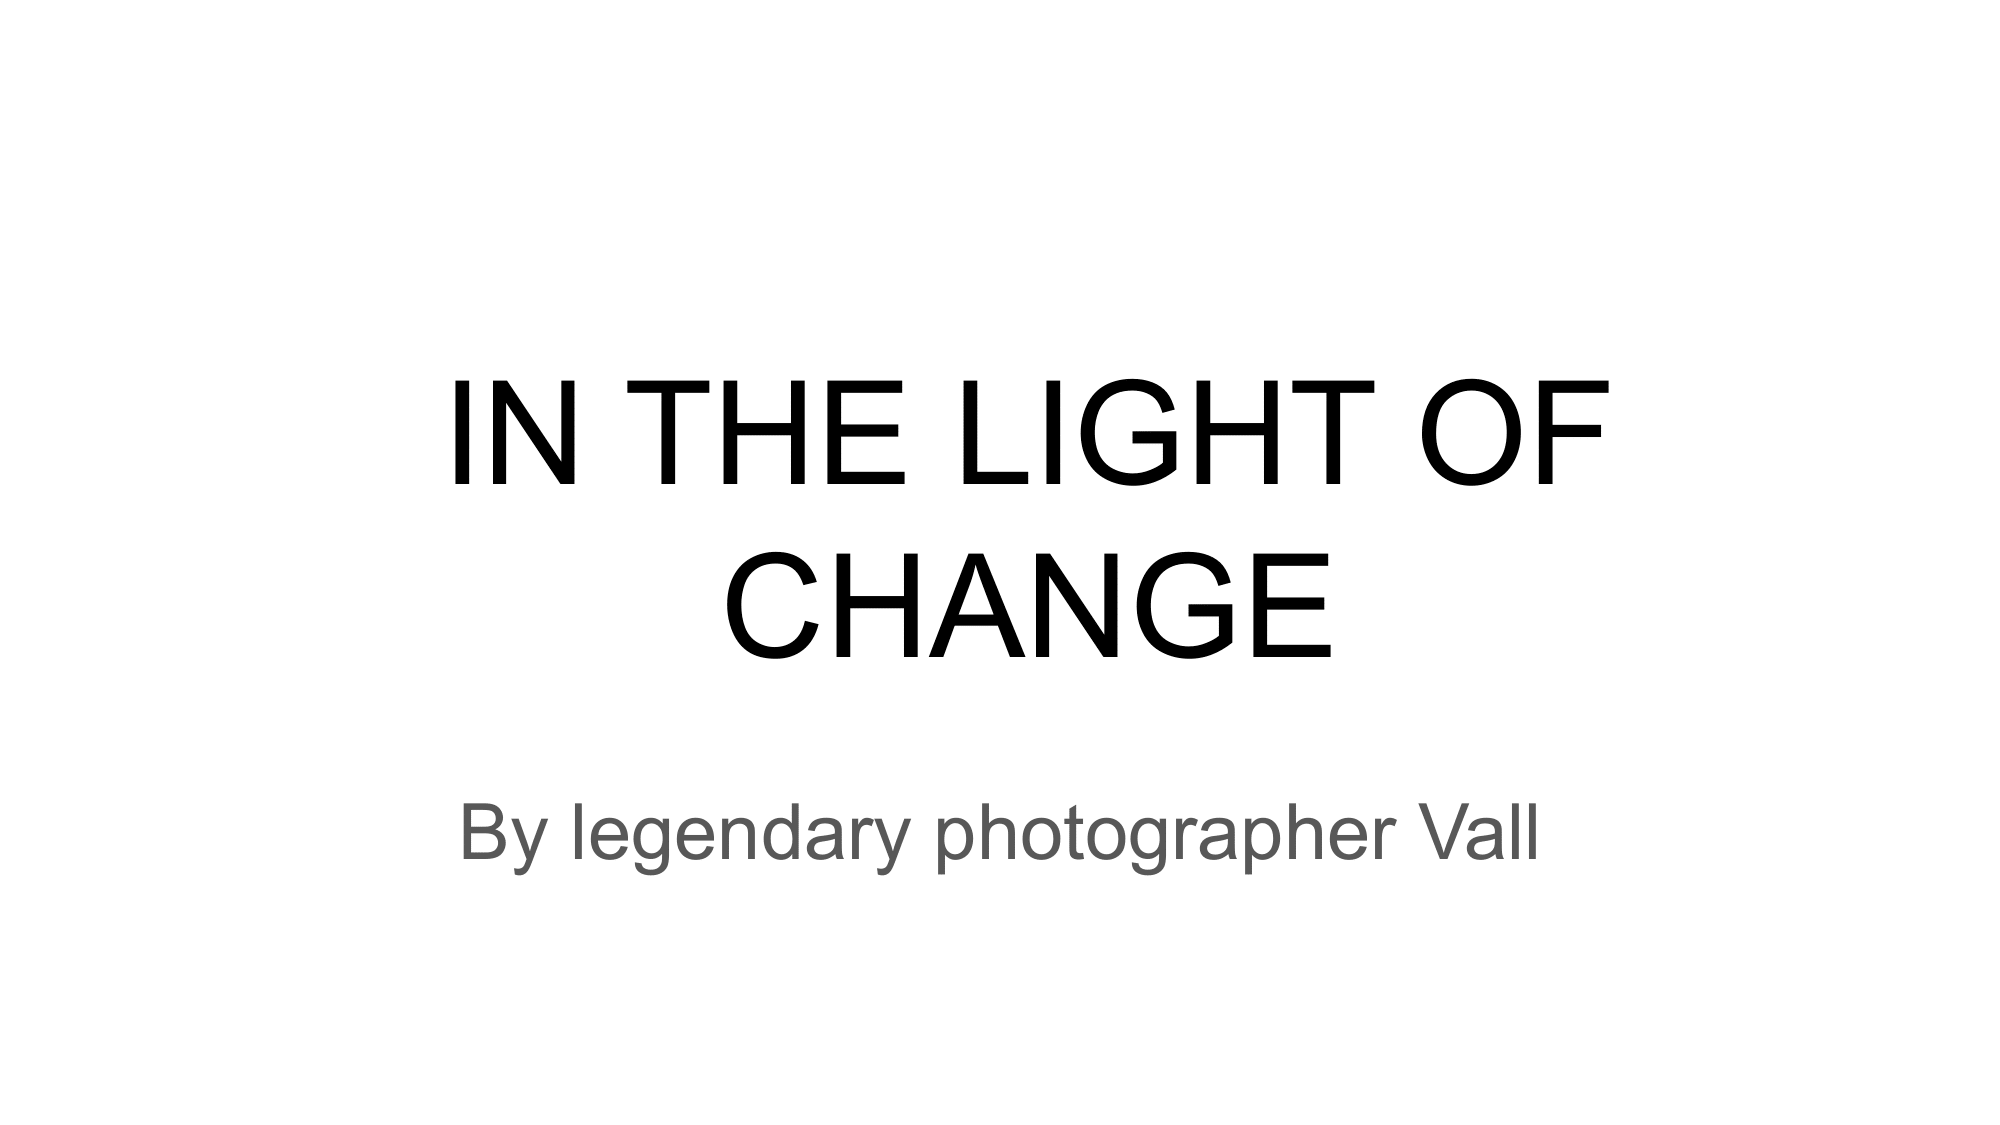 IN THE LIGHT OF CHANGE - elwely vall-01.png